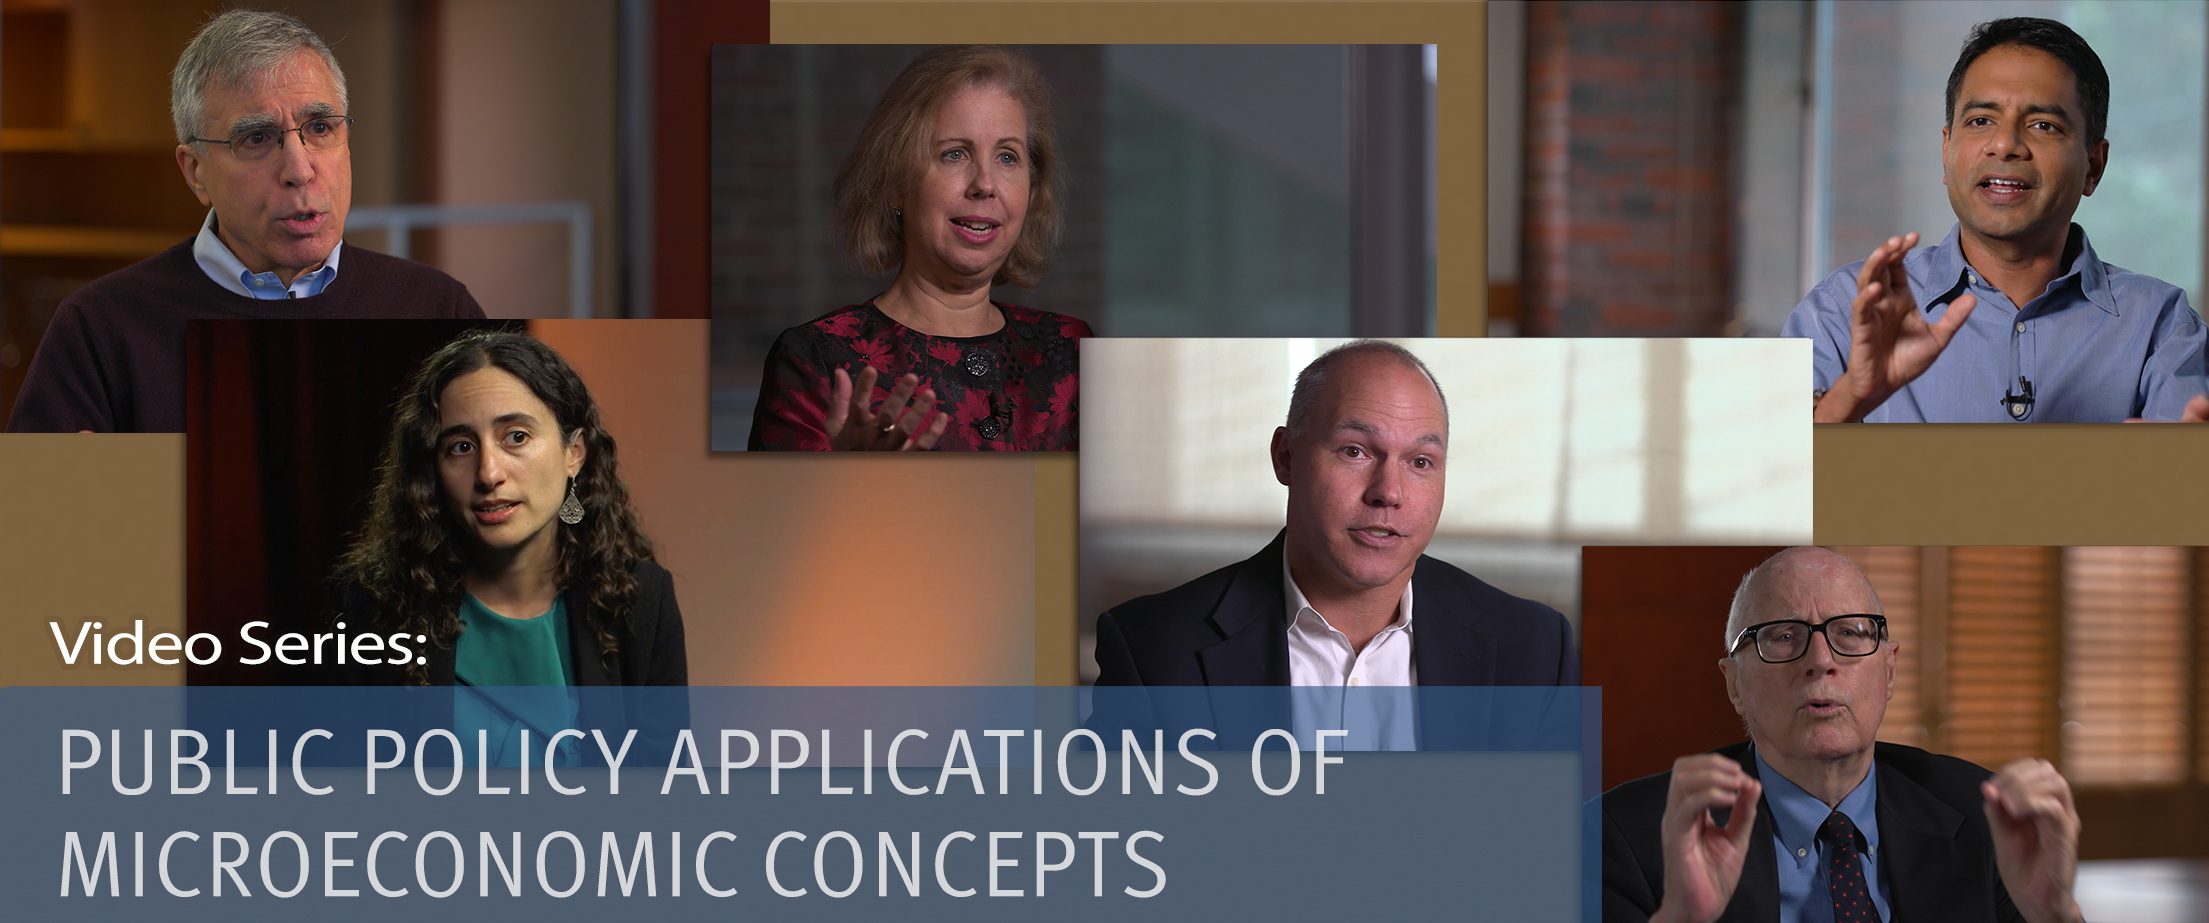 Video Series: Public Policy Applications of Microeconomic Concepts